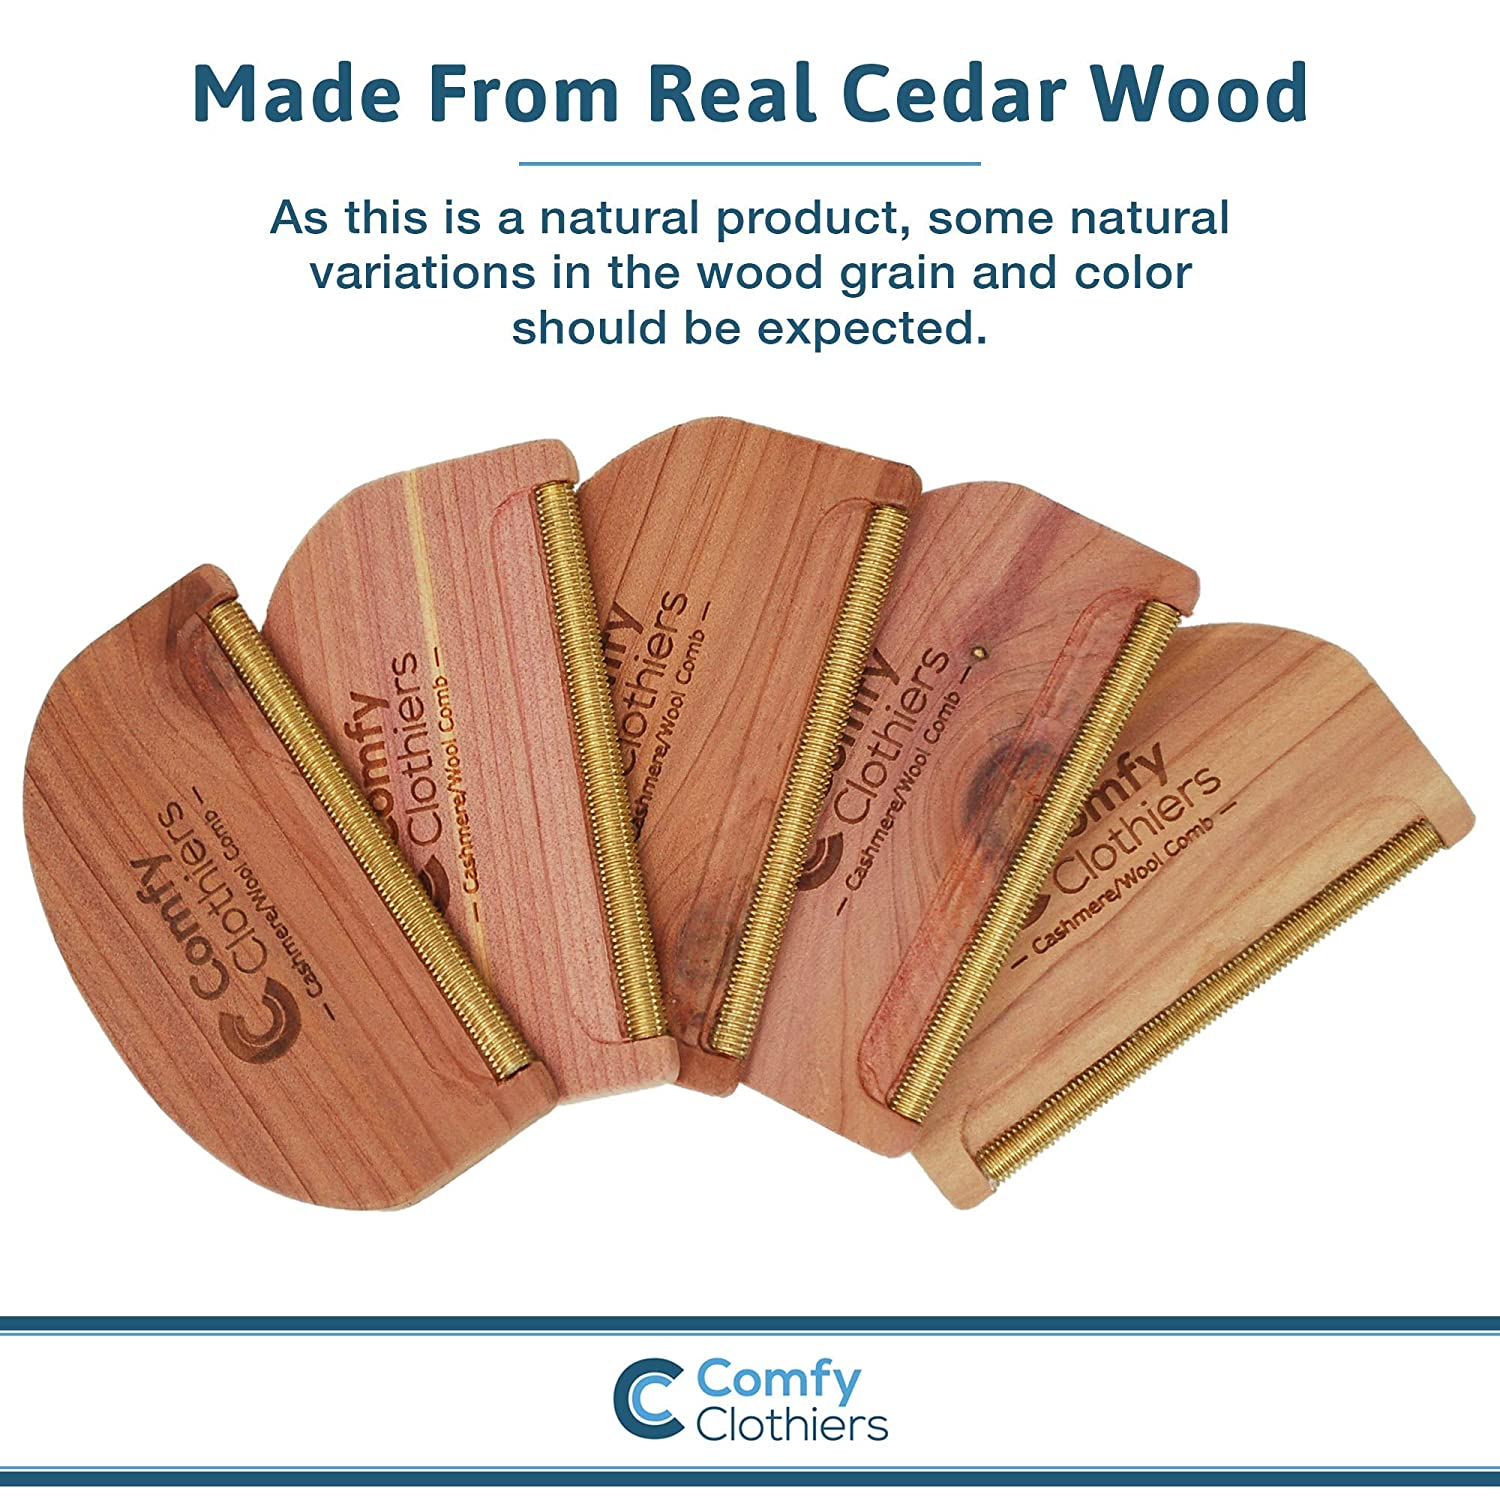 Comfy Clothiers Cedar Wood Cashmere & Fine Wool Comb for De-Pilling Sweaters & Clothing - Removes Pills, Fuzz and Lint from Garments: Amazon.com: Industrial ...